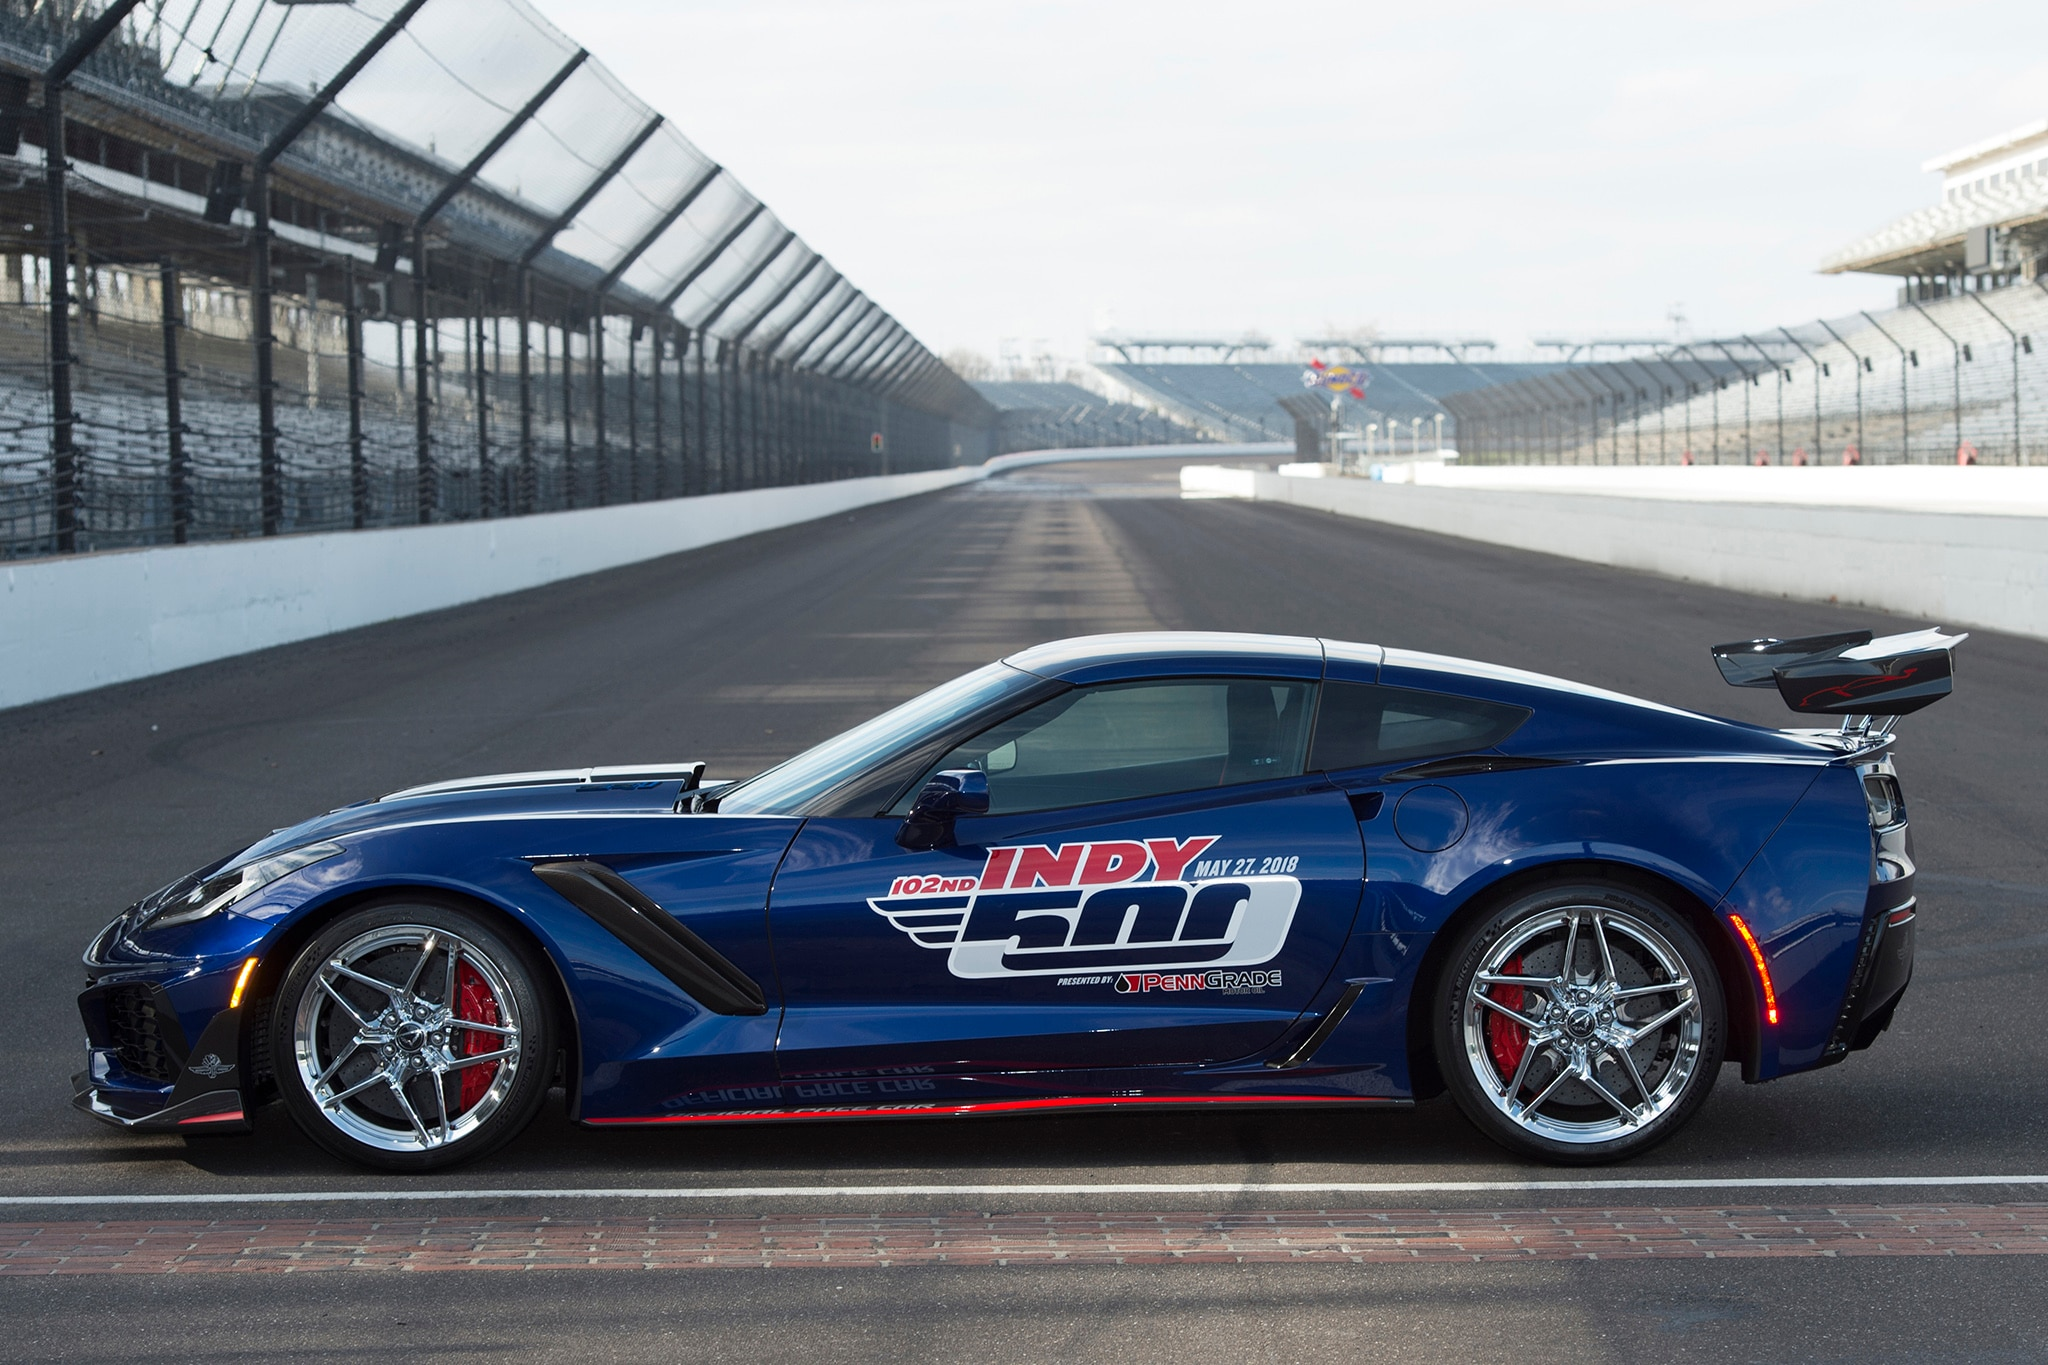 Chevy Corvette ZR1 will pace the Indy 500